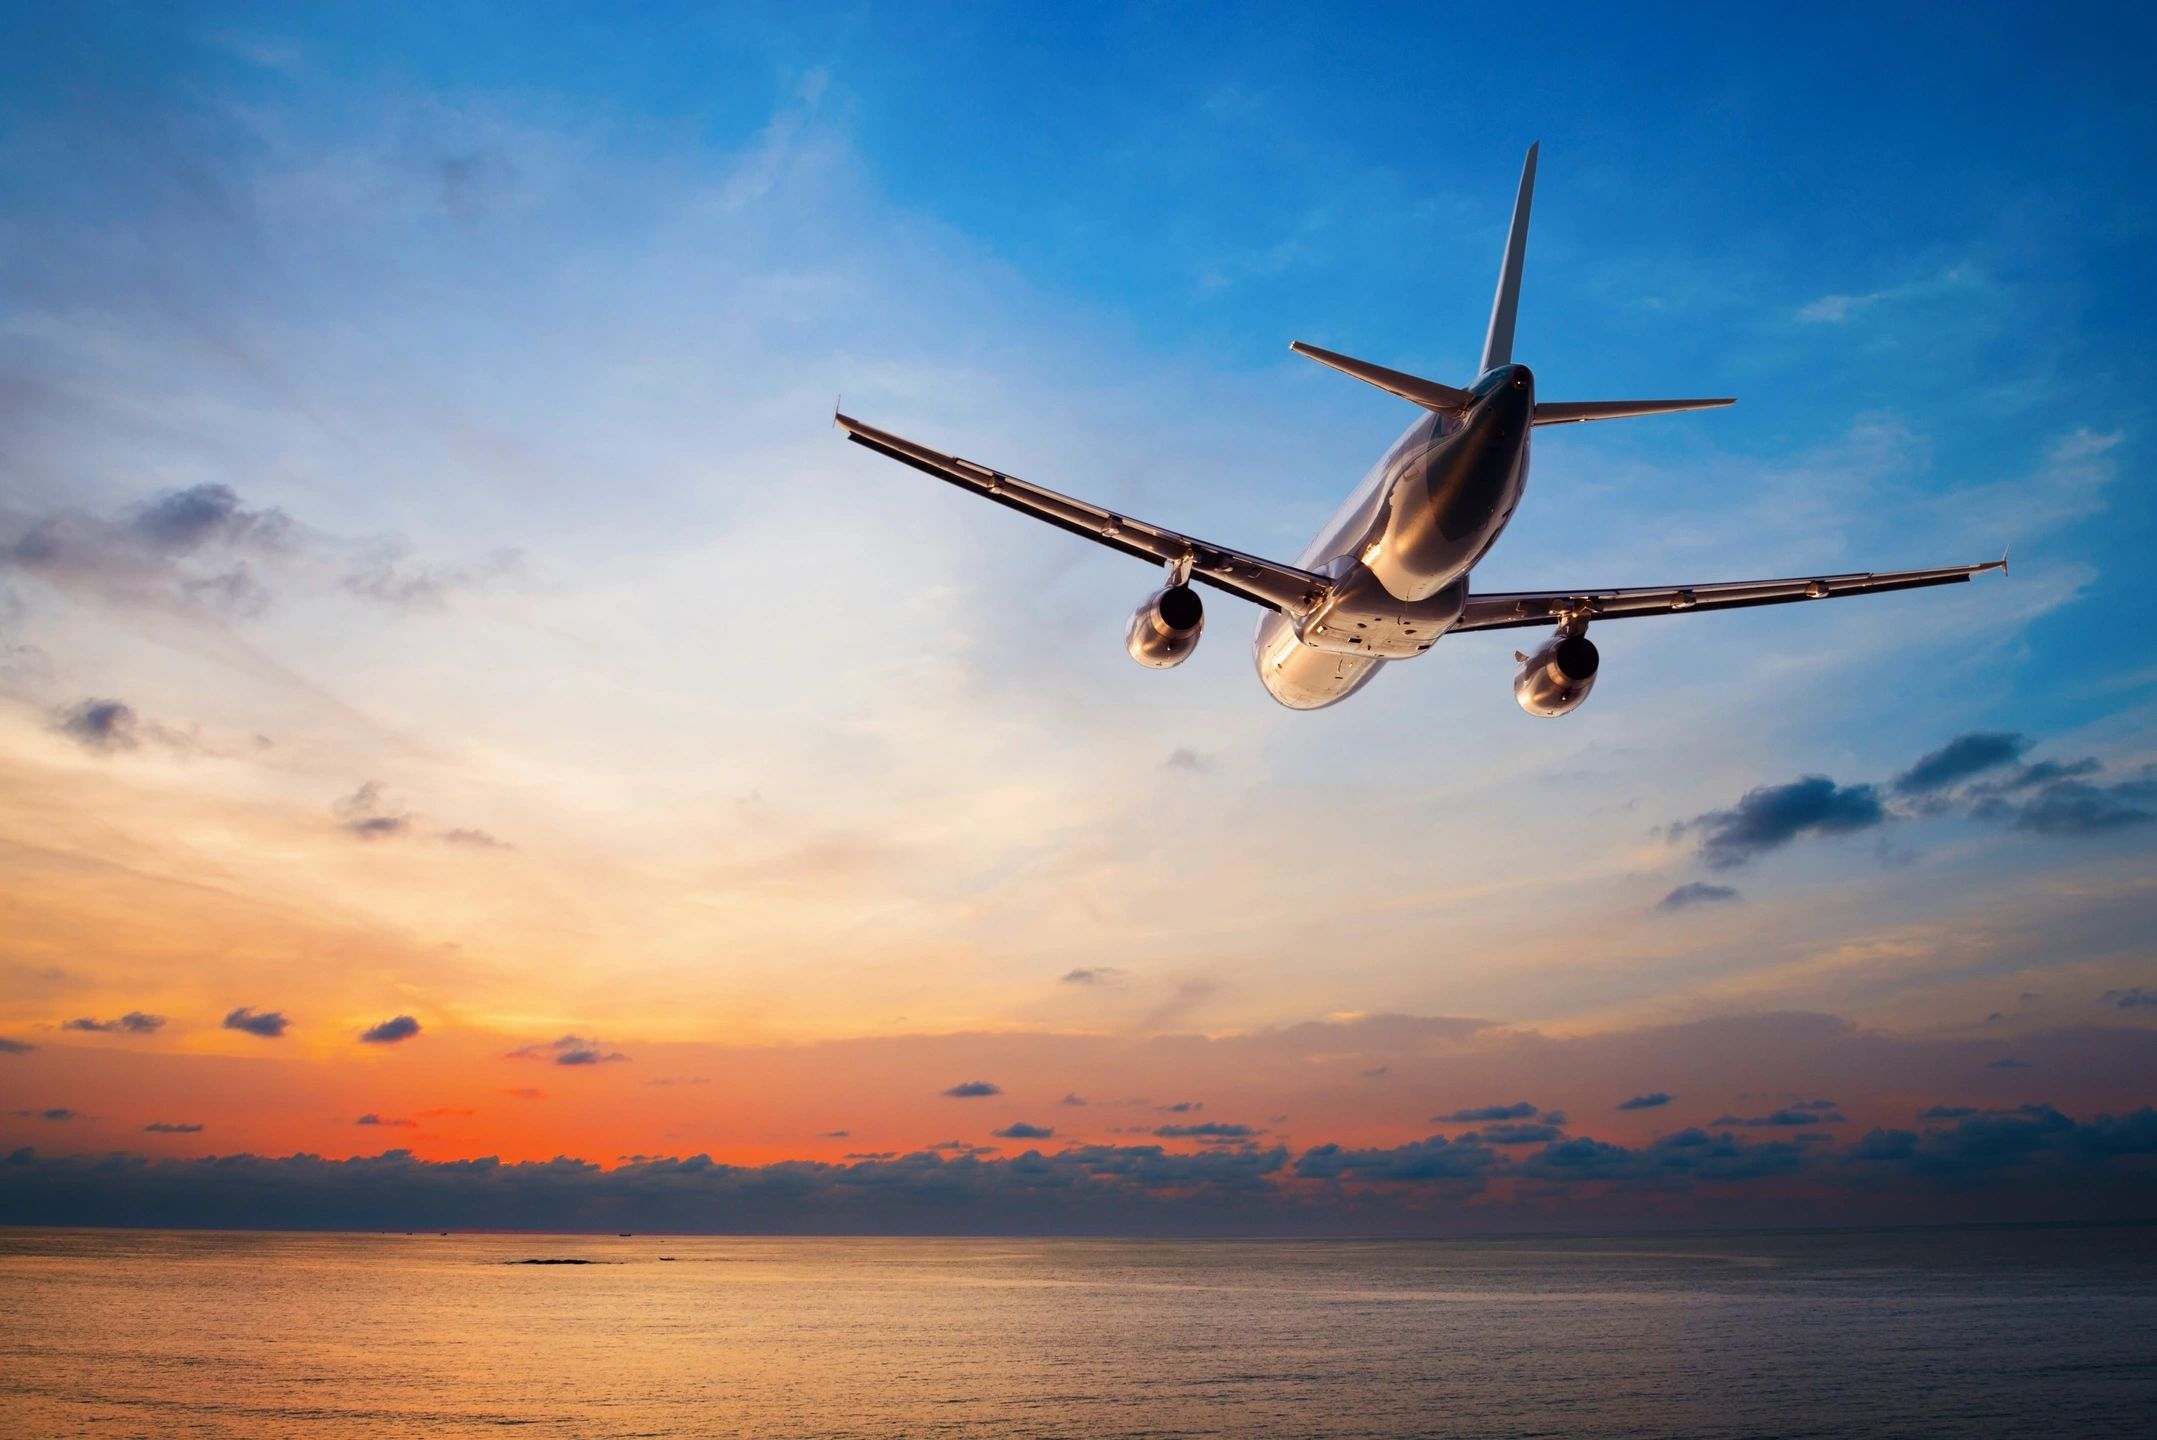 How safe is flying during the Covid-19 pandemic?